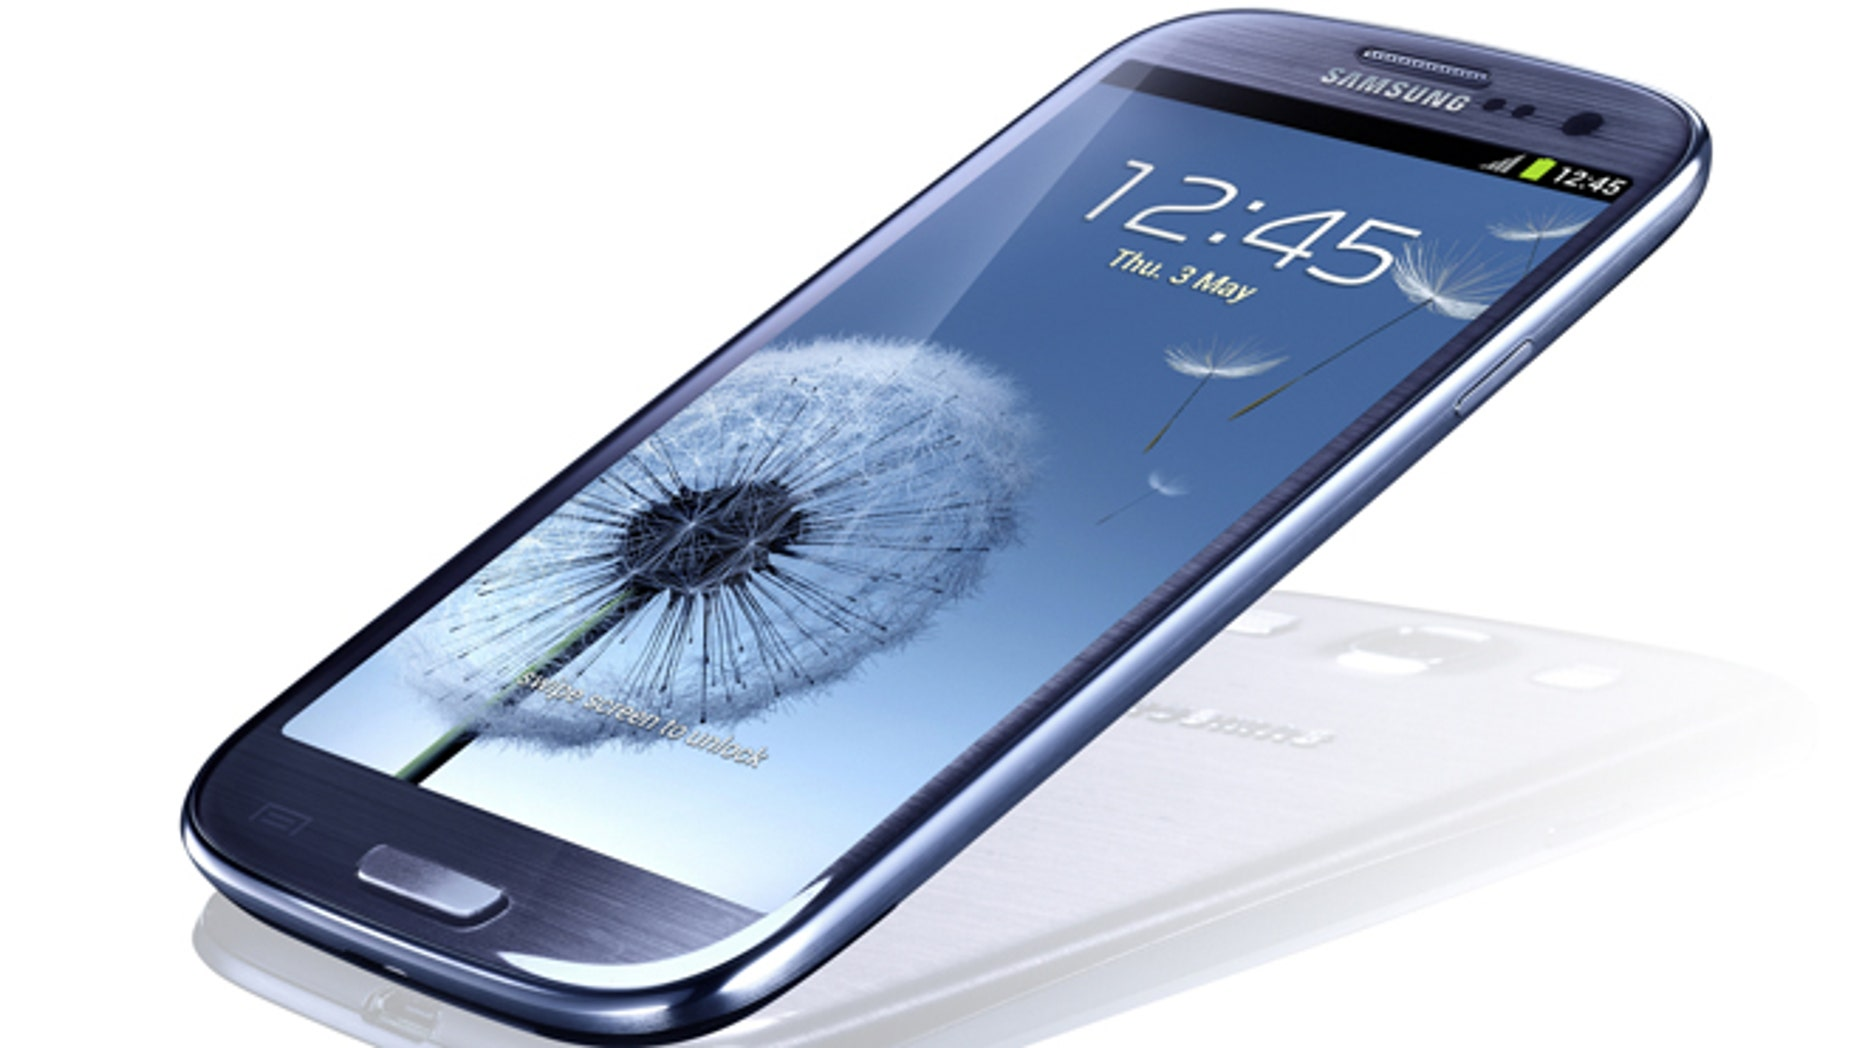 The SIII, the latest phone in the company's Galaxy line, has emerged as the biggest competitor to Apple's iPhone. Samsung said it went on sale in Europe on Tuesday.